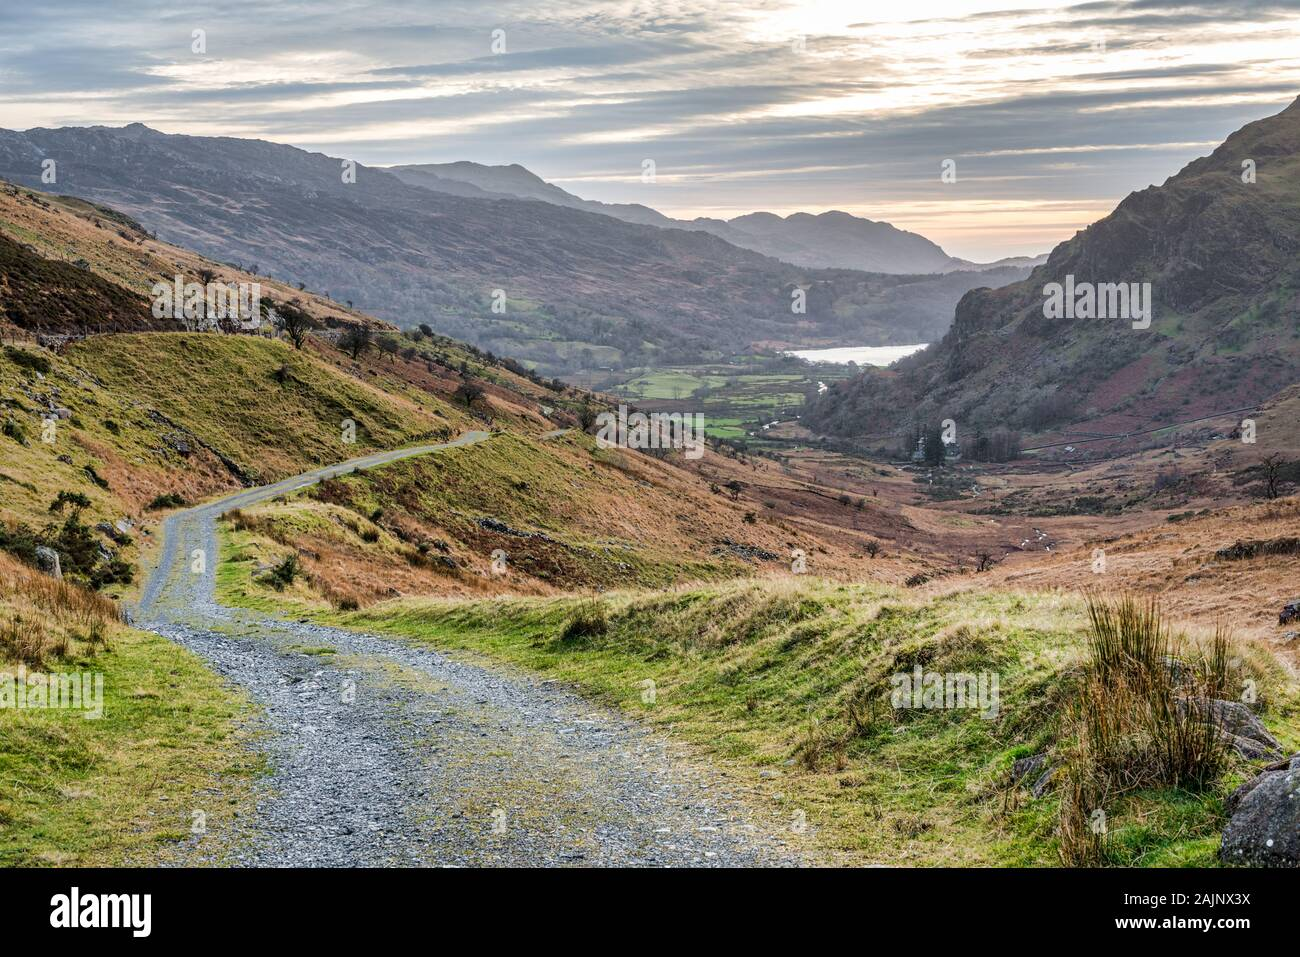 A rural mountain road in Snowdonia National Park in Wales over looking Llyn Gwynant Lake Stock Photo